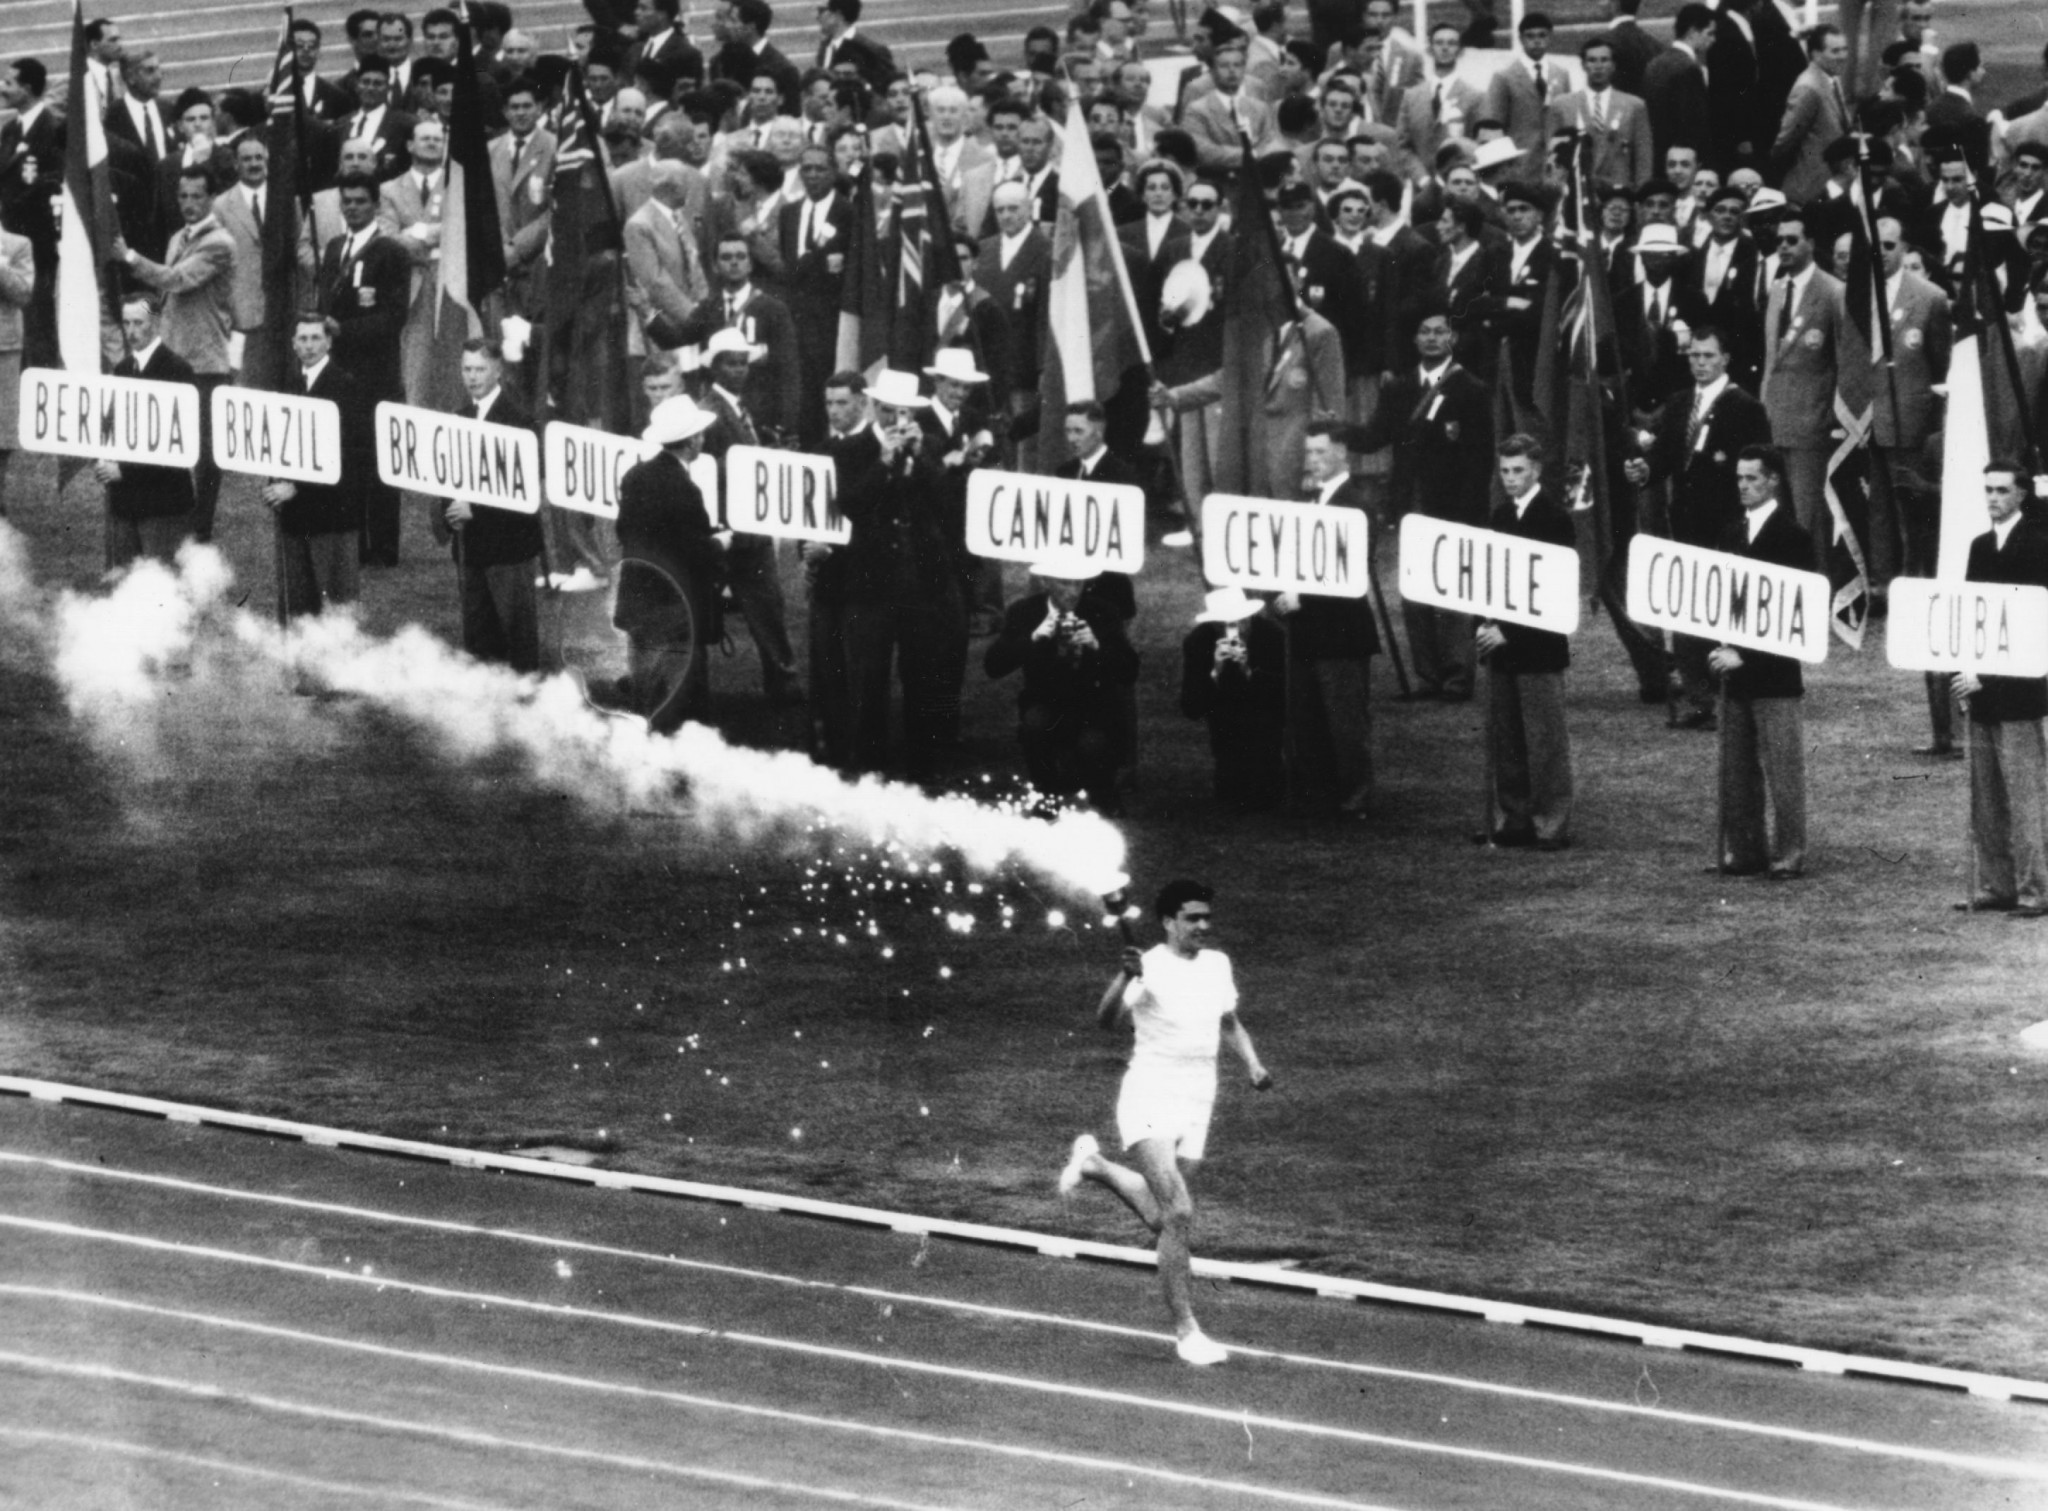 Melbourne became the first location in the Southern Hemisphere to host the Olympics in 1956 ©Getty Images